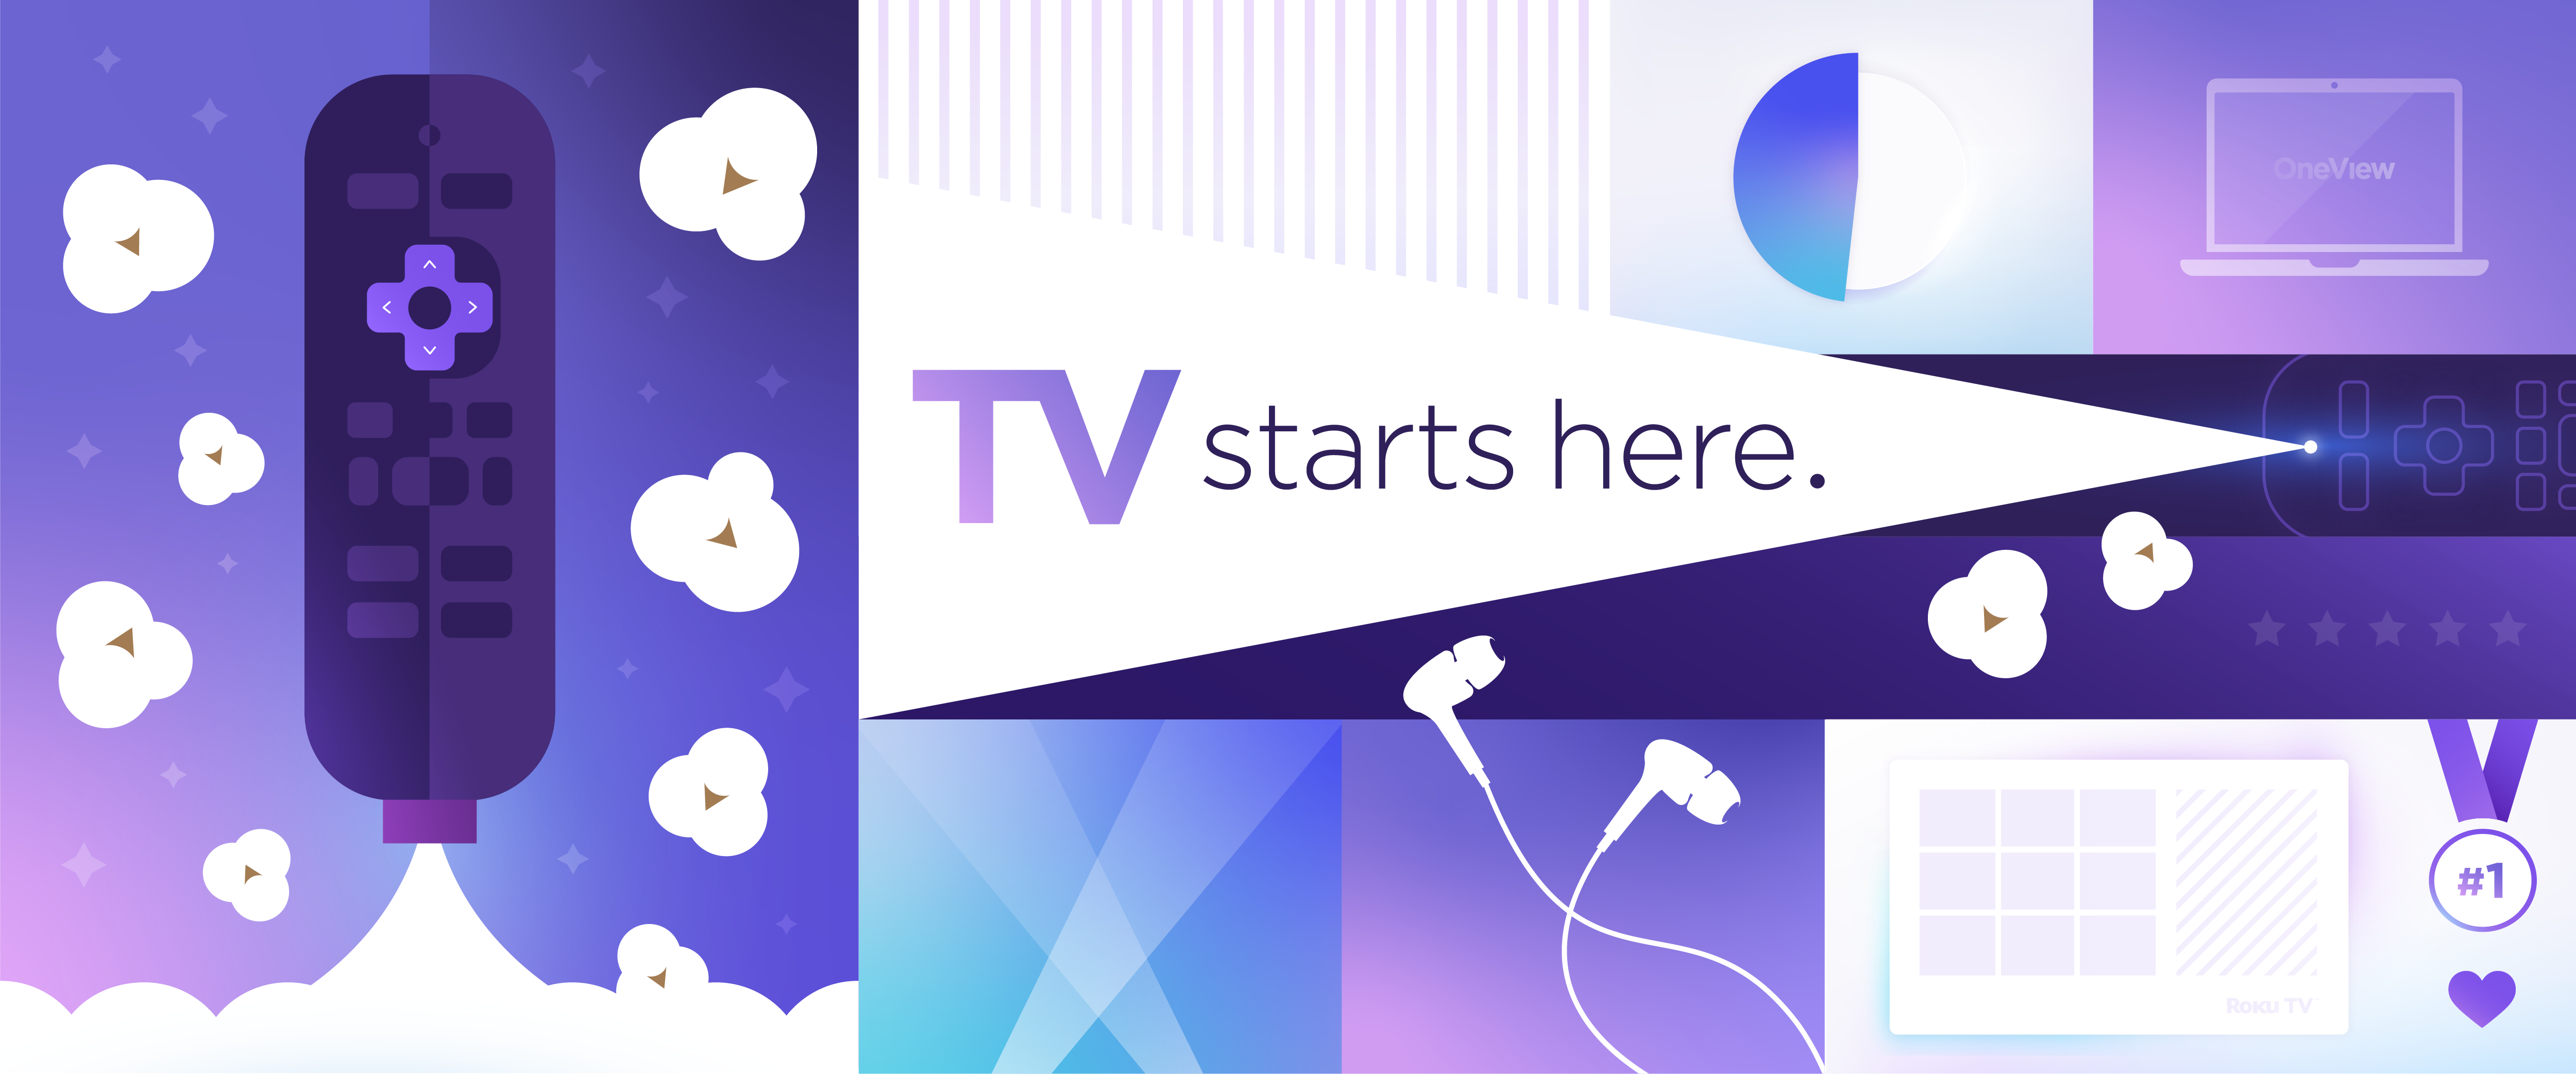 Roku: TV Starts Here.